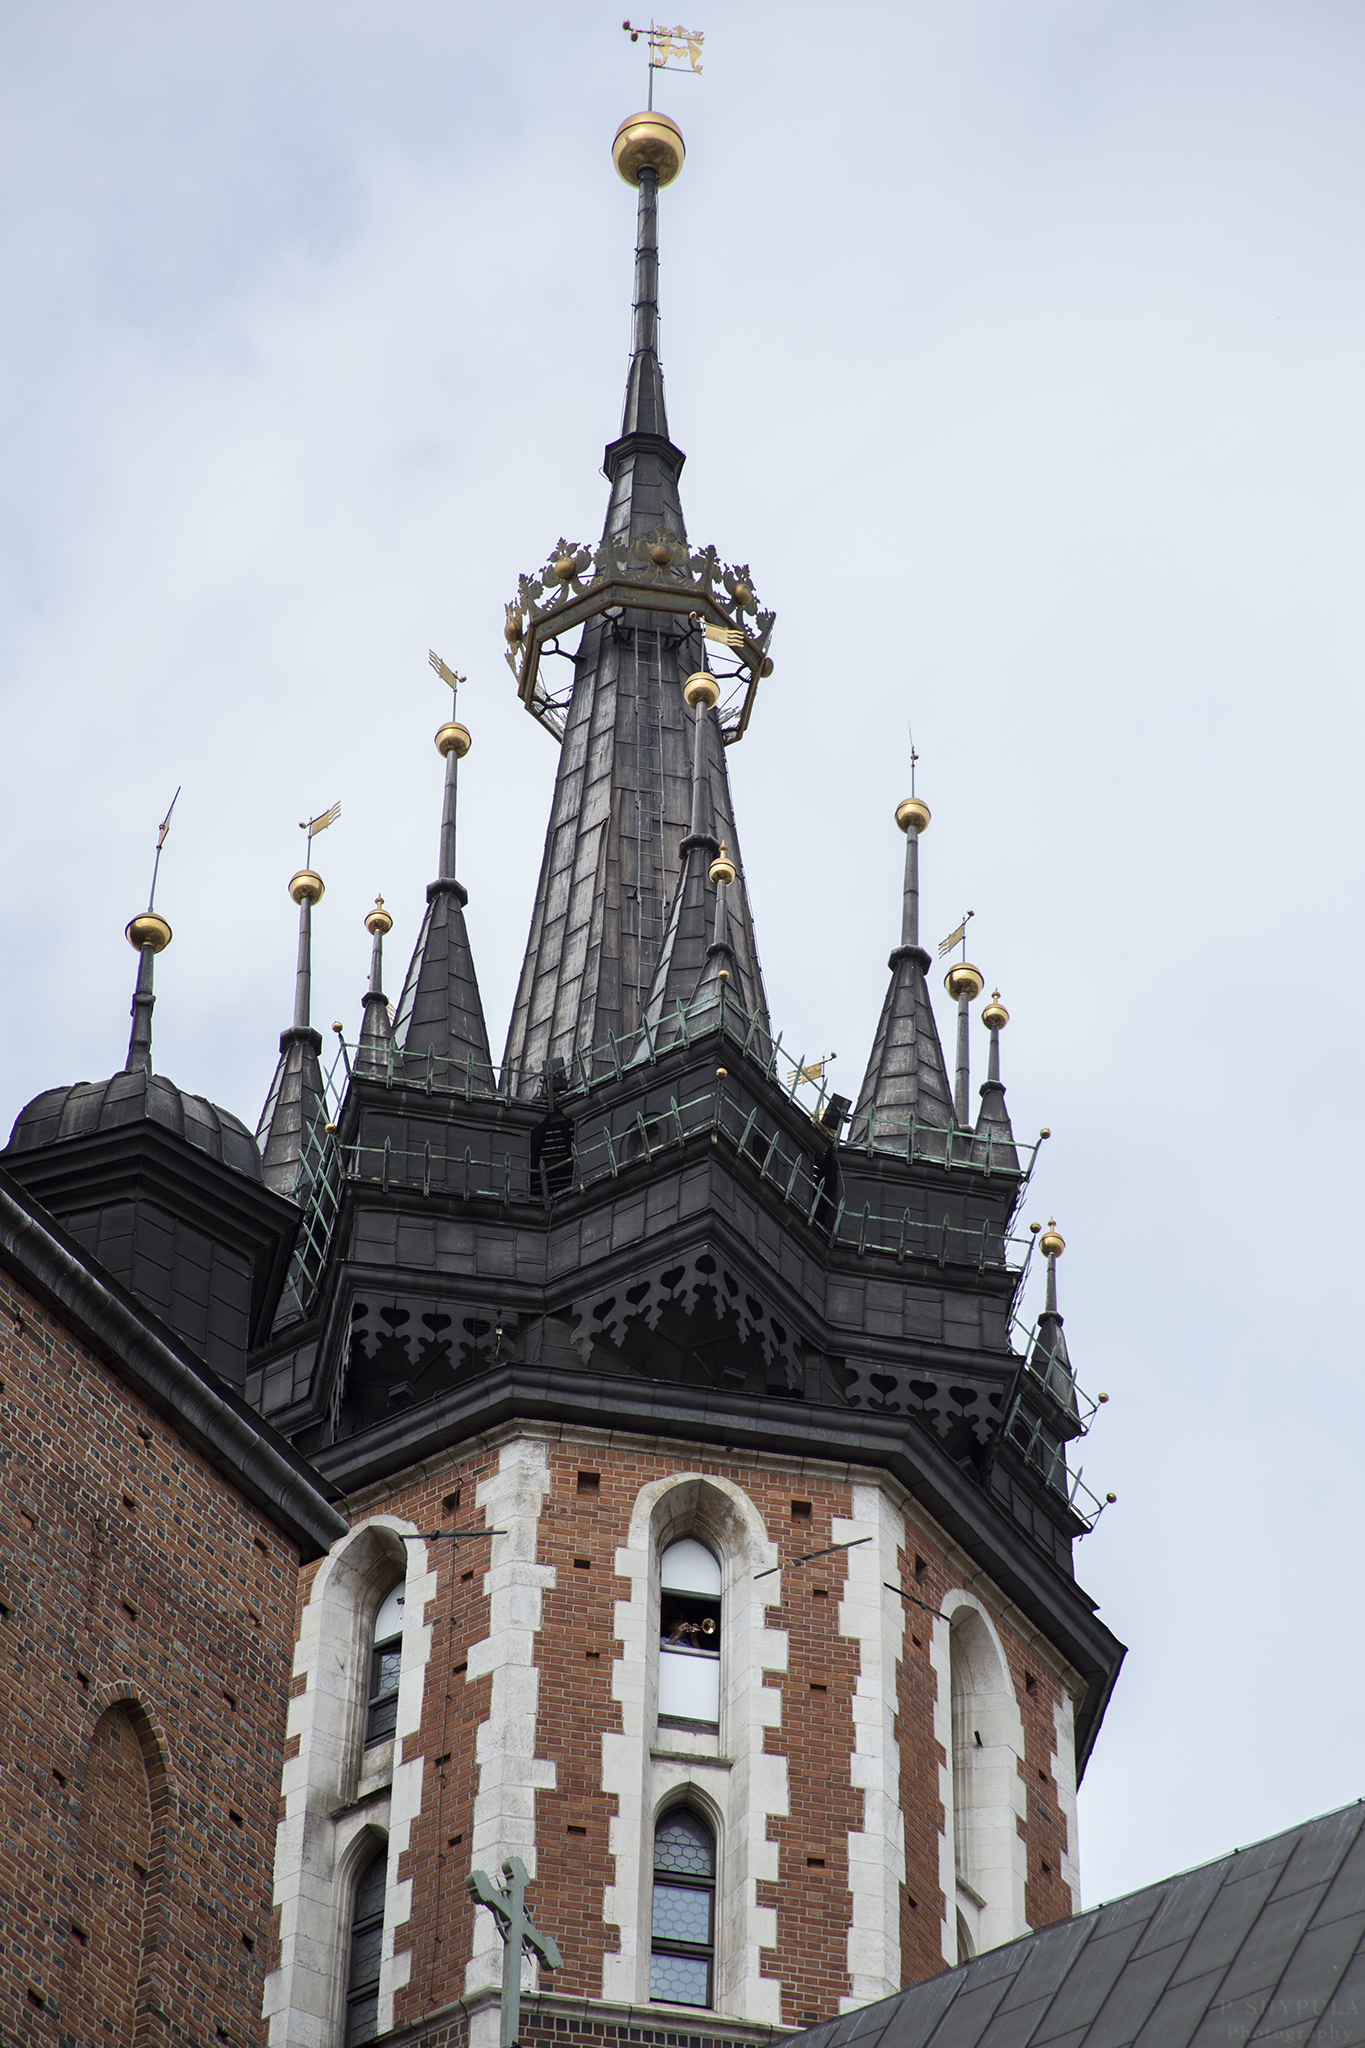 The hourly trumpet call at St. Mary's Basilica in Krakow